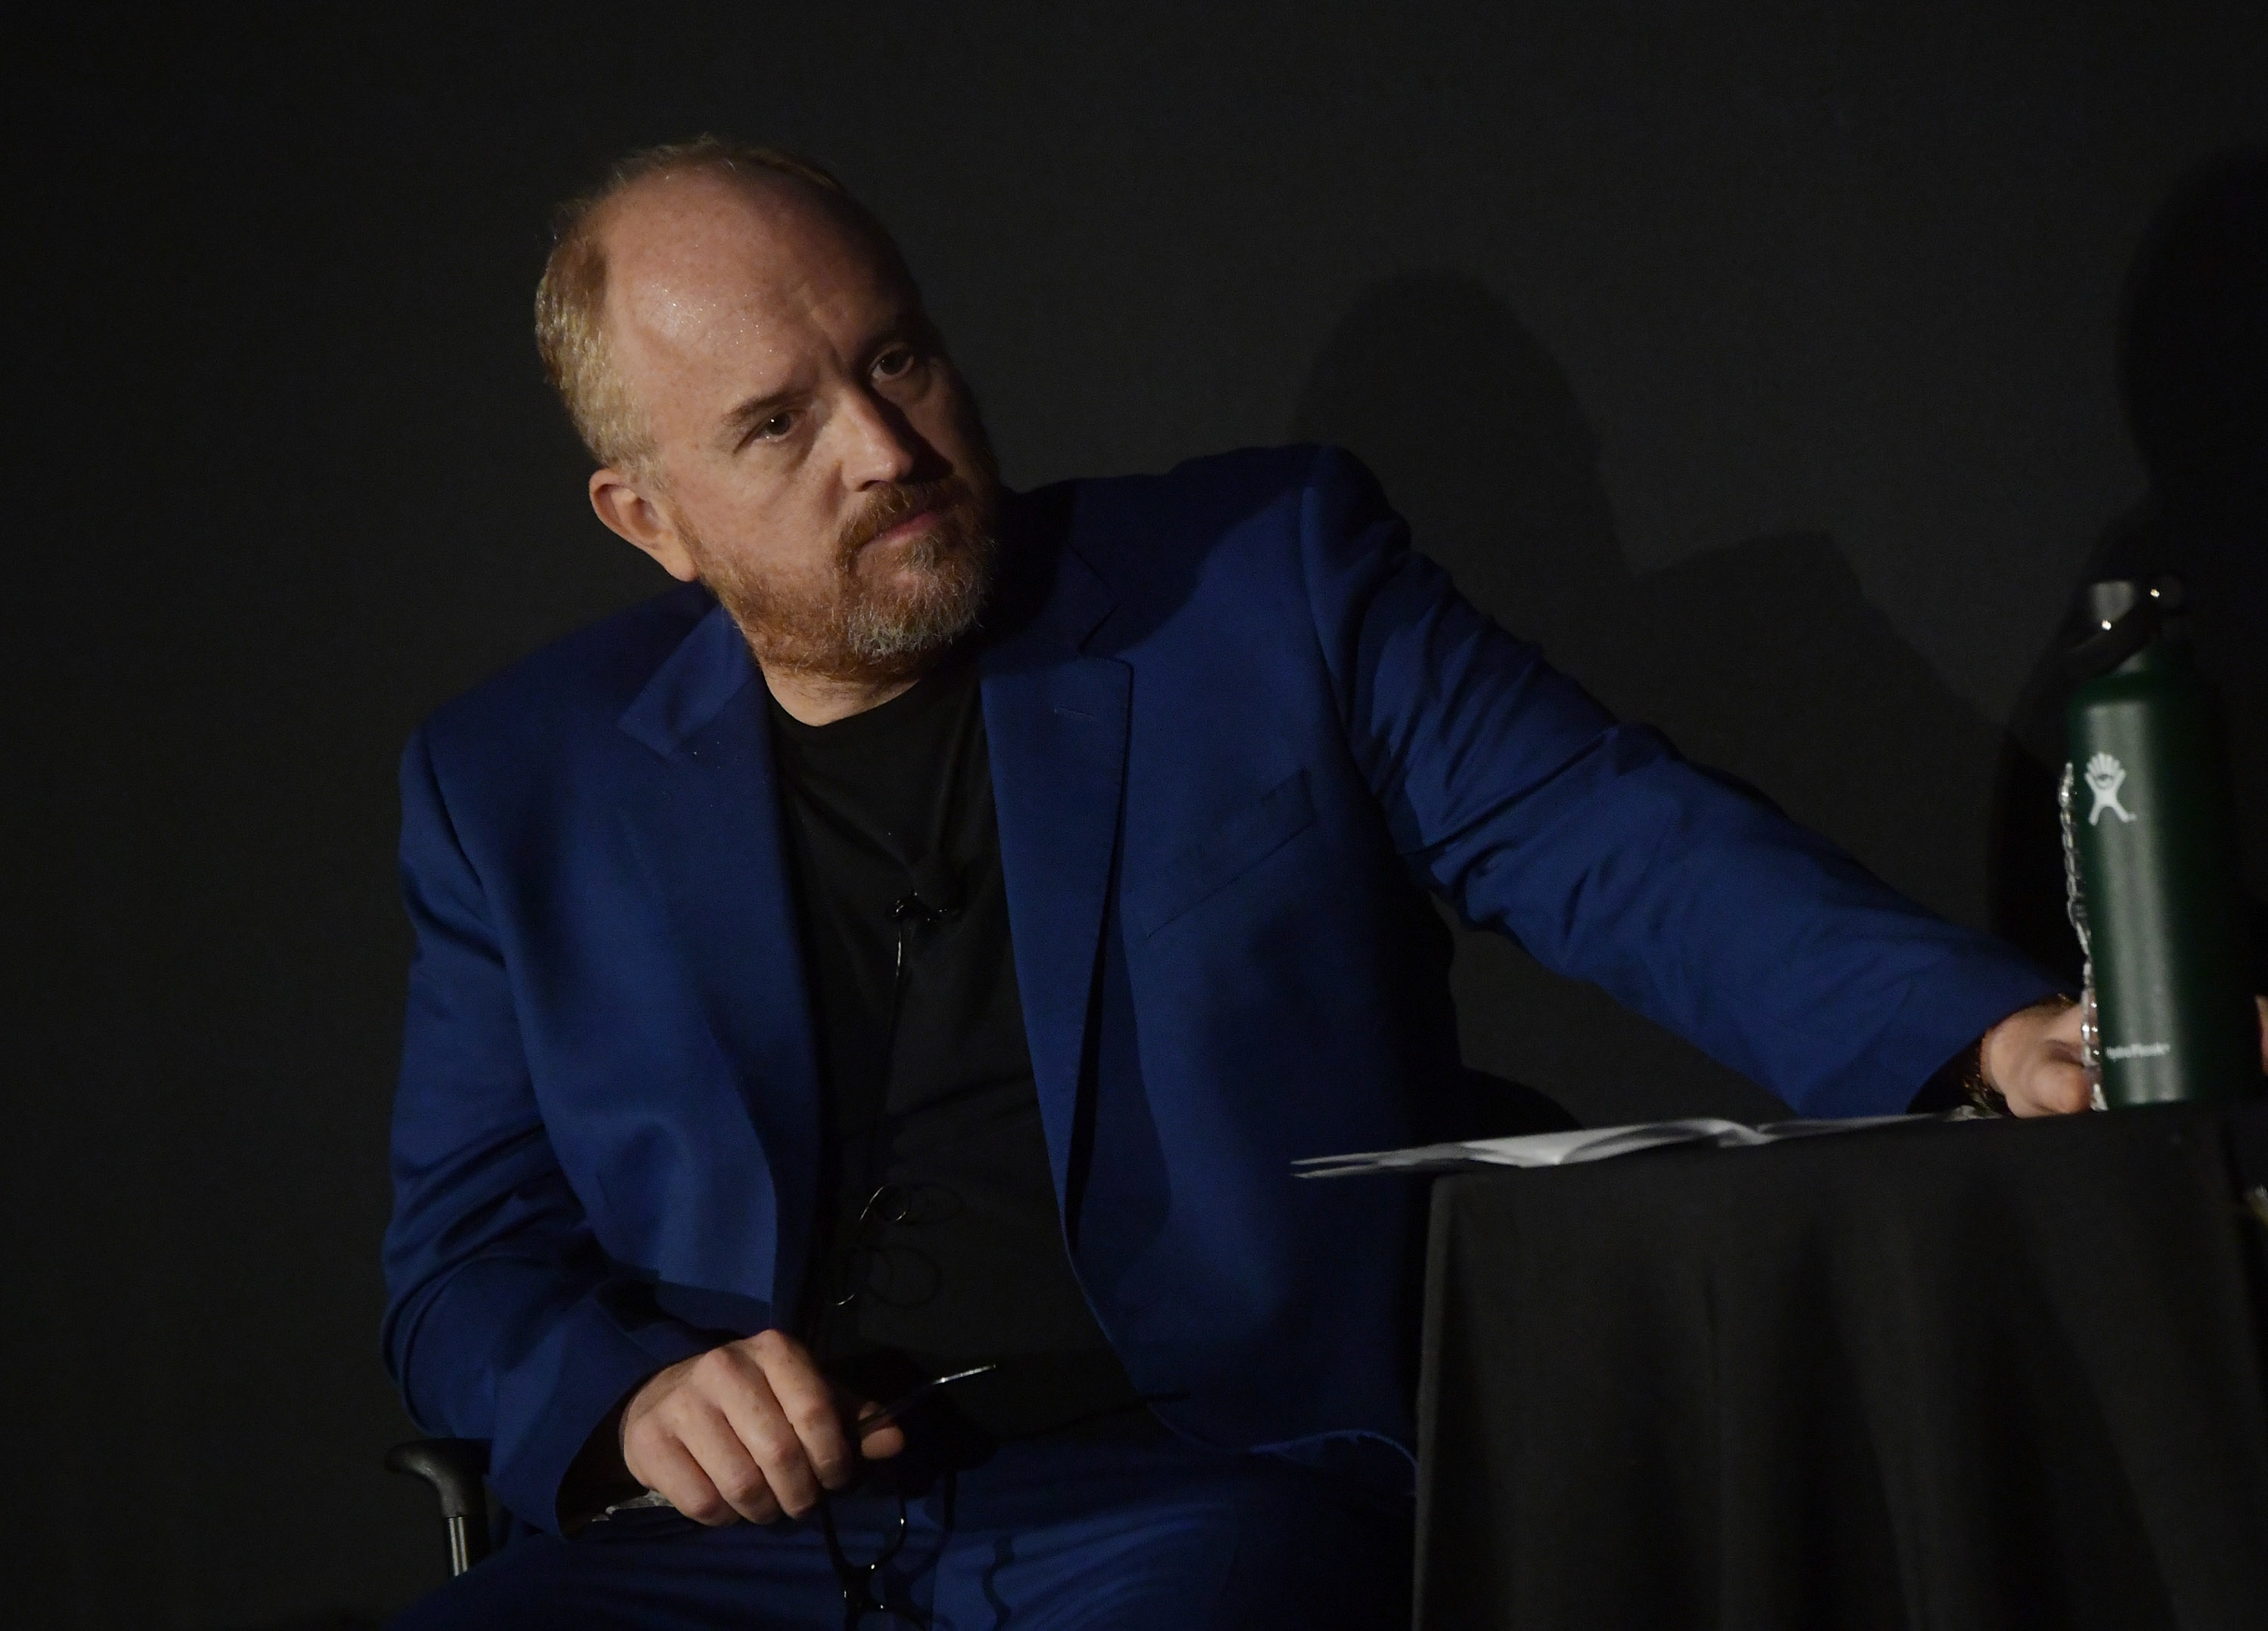 Louis C K  scandal: after sexual misconduct, the comedian returns to